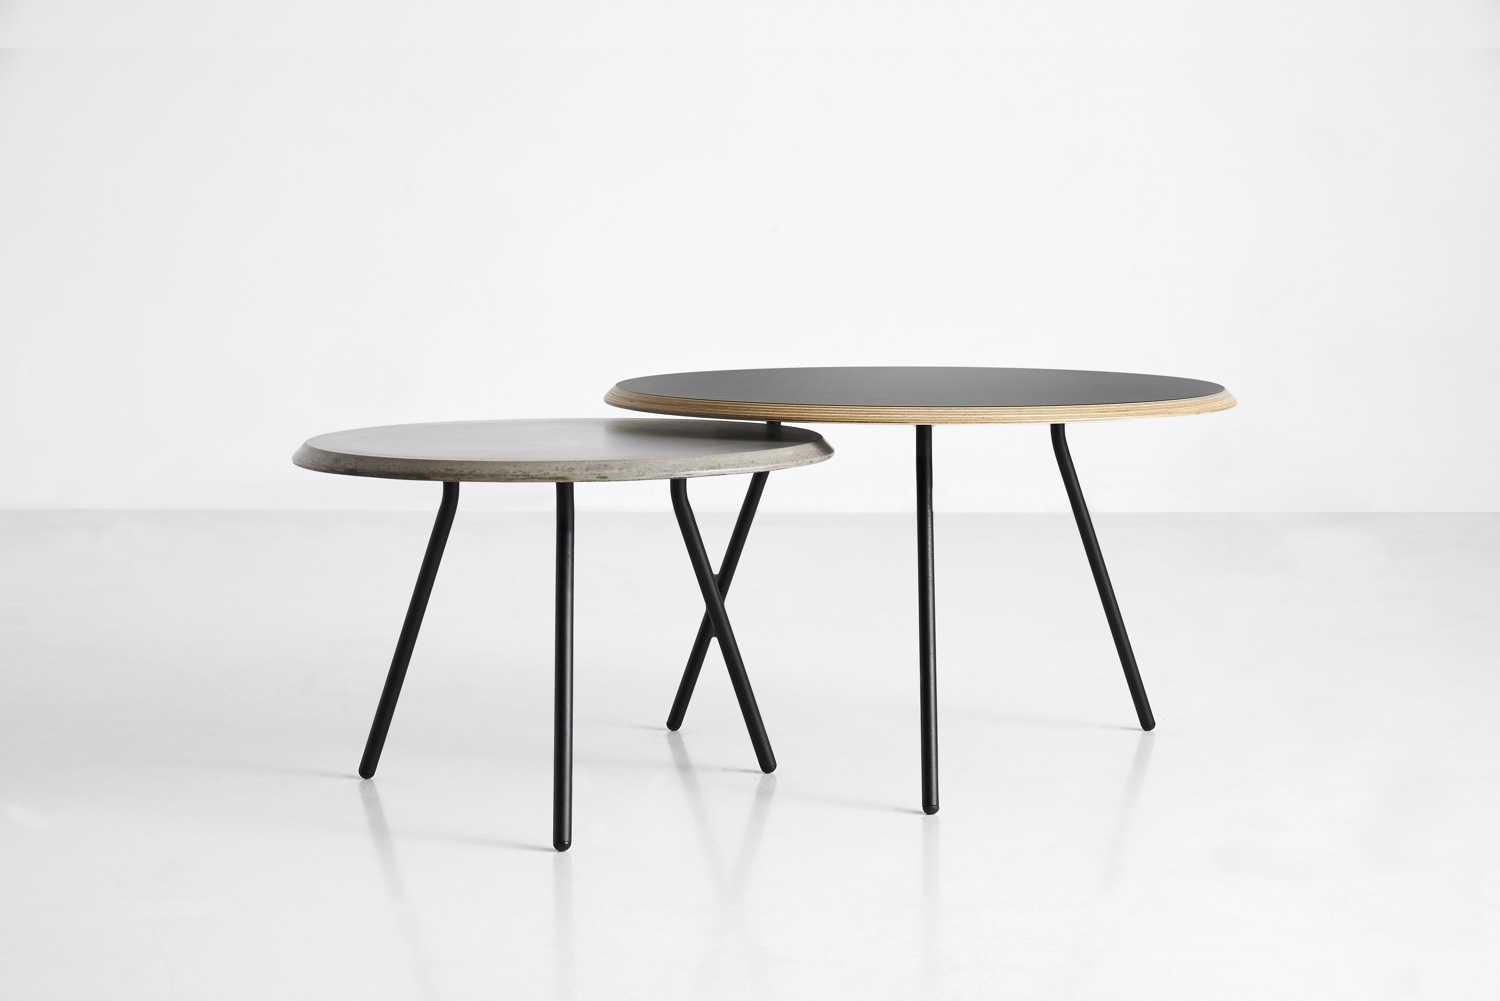 Soround coffee table concretet and plywood